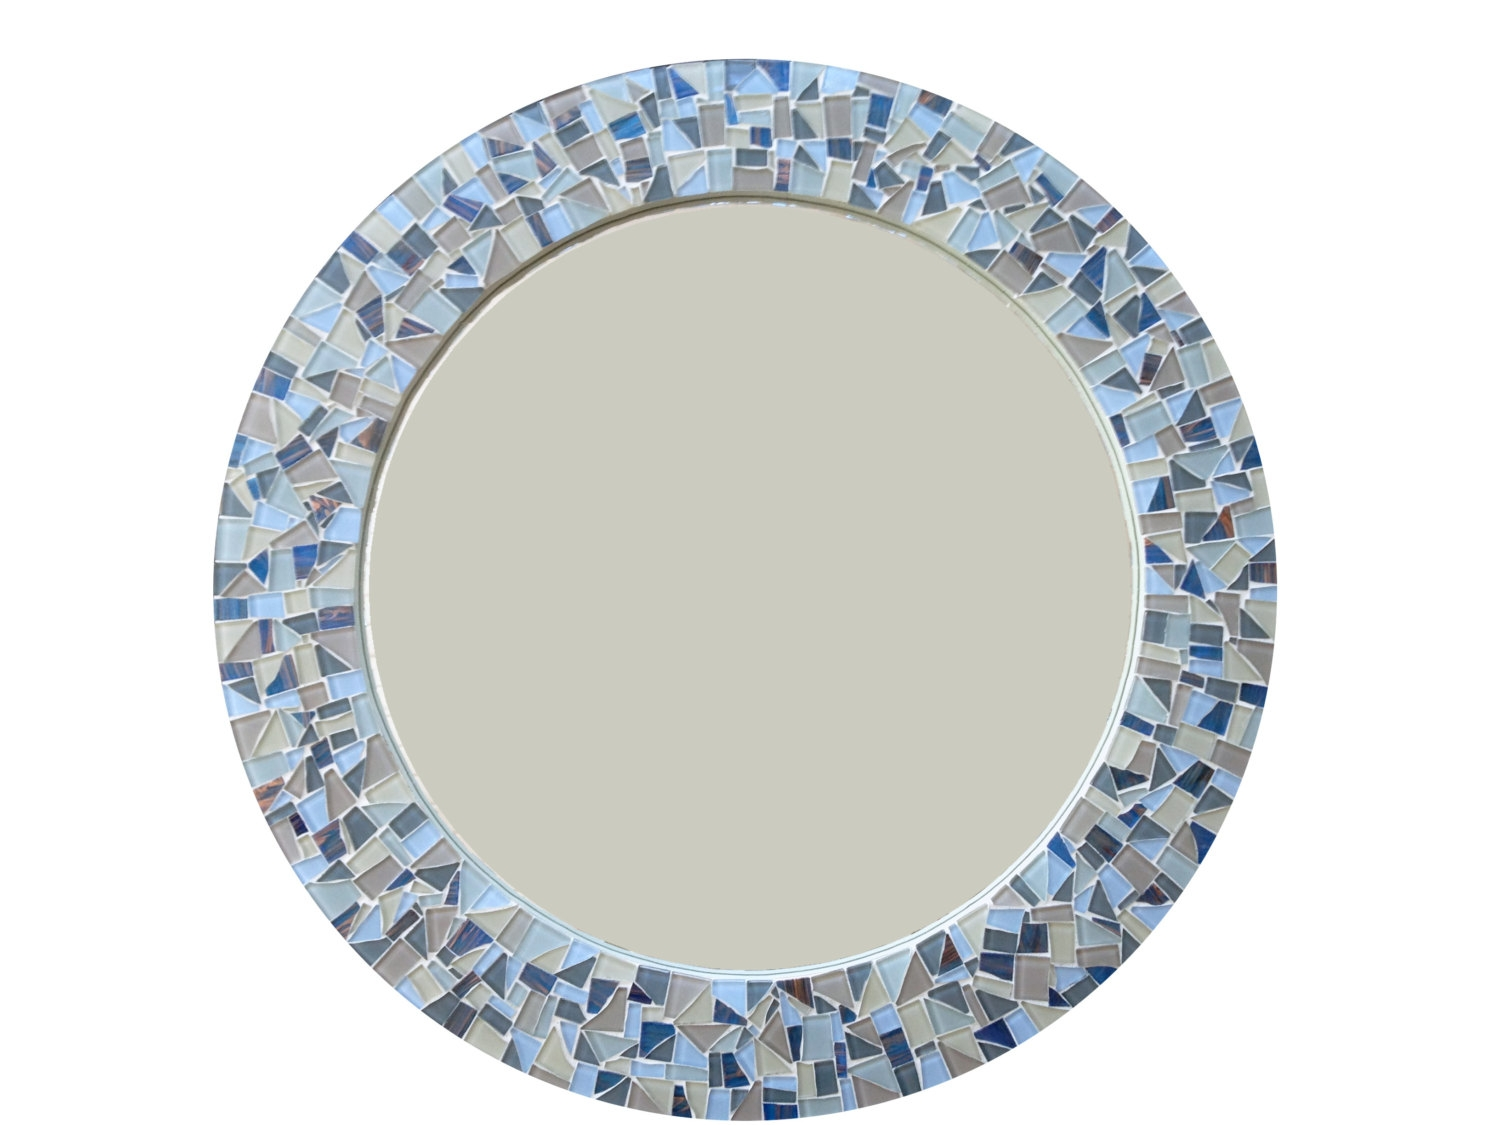 Round Mirror Mosaic Wall Mirror Blue Gray And Tan Cottage Inside Round Mosaic Wall Mirror (View 11 of 15)